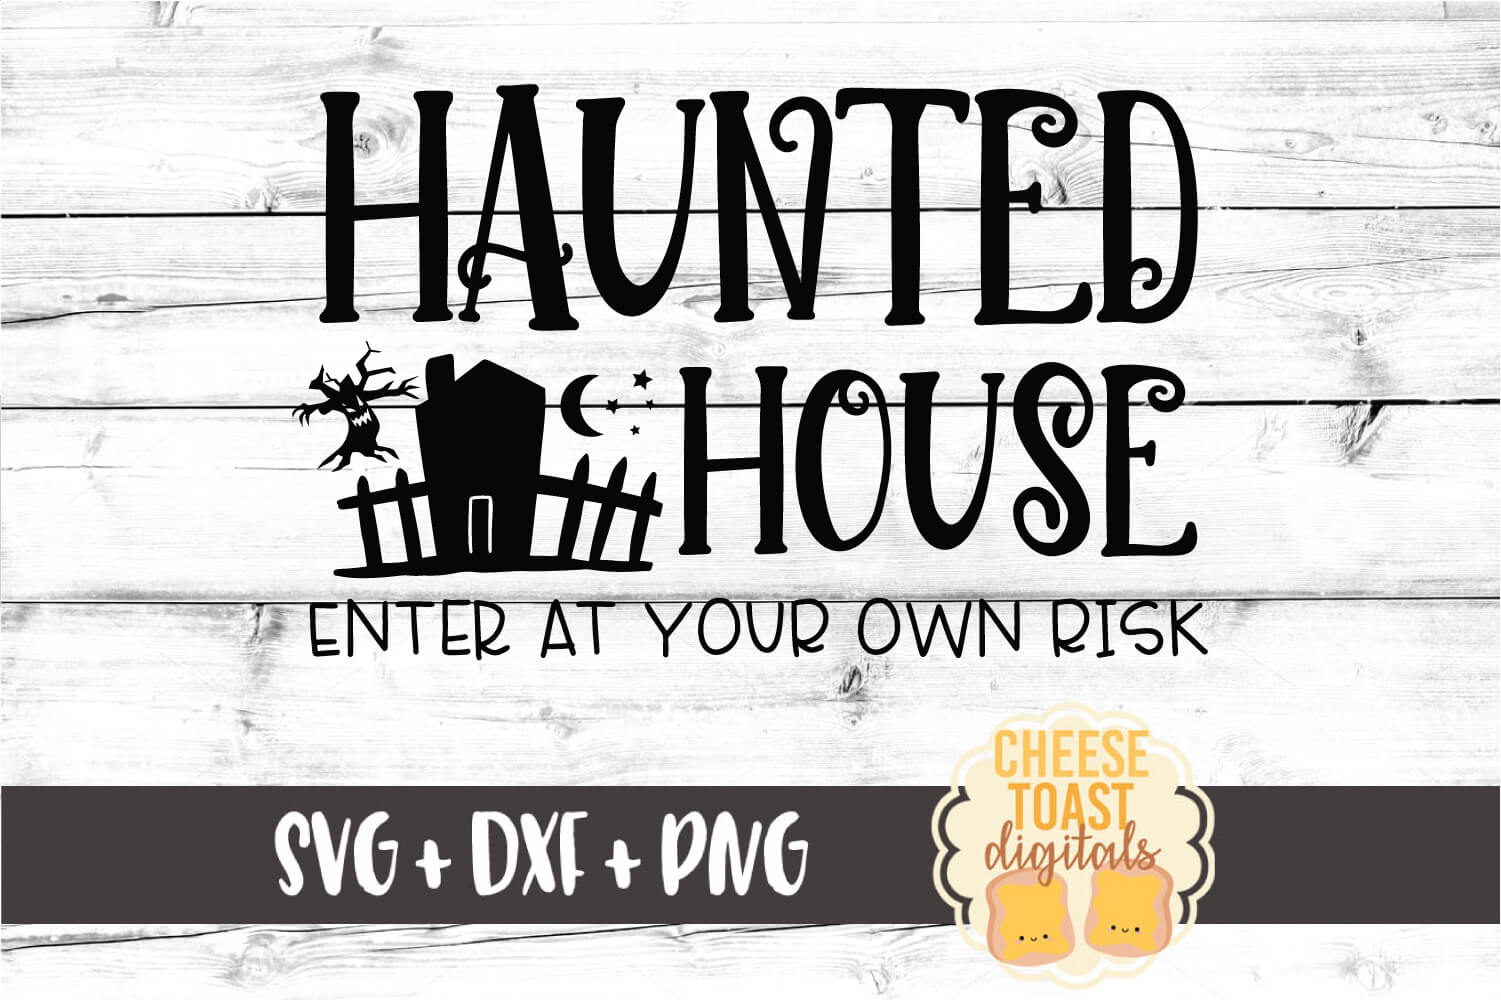 Haunted House Enter At Your Own Risk - Halloween SVG File example image 2